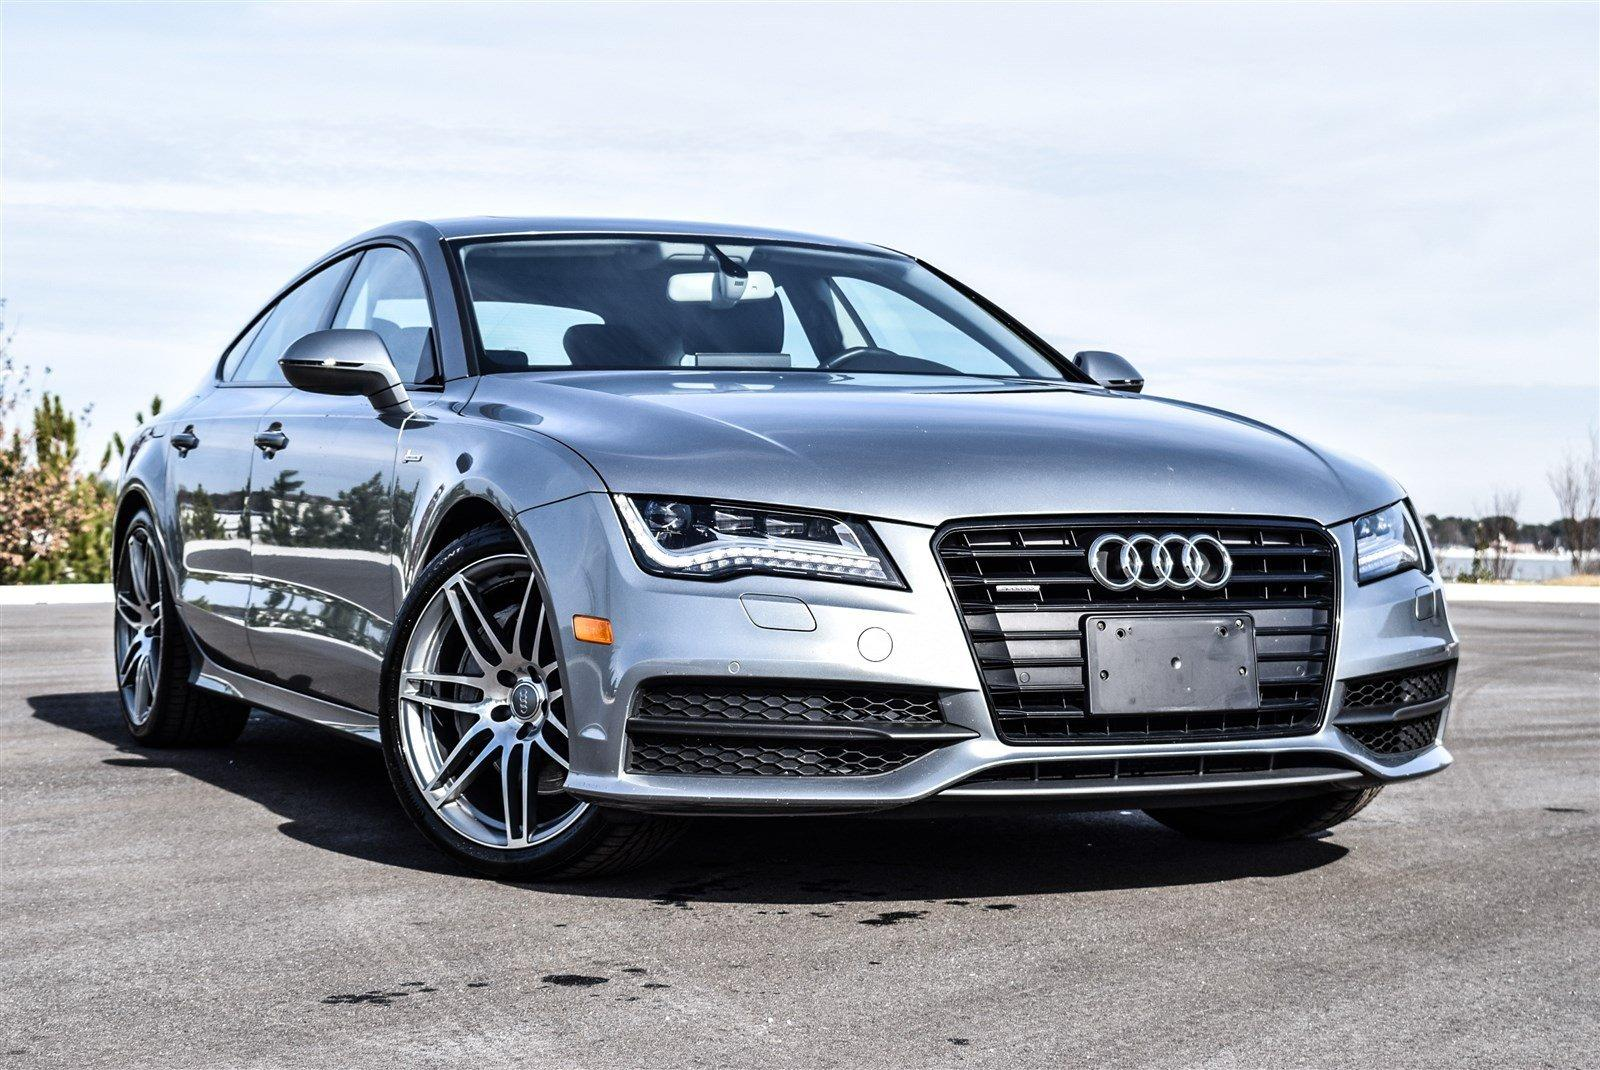 Audi For Sale In Ga >> 2014 Audi A7 3.0 Prestige Stock # 050382 for sale near ...